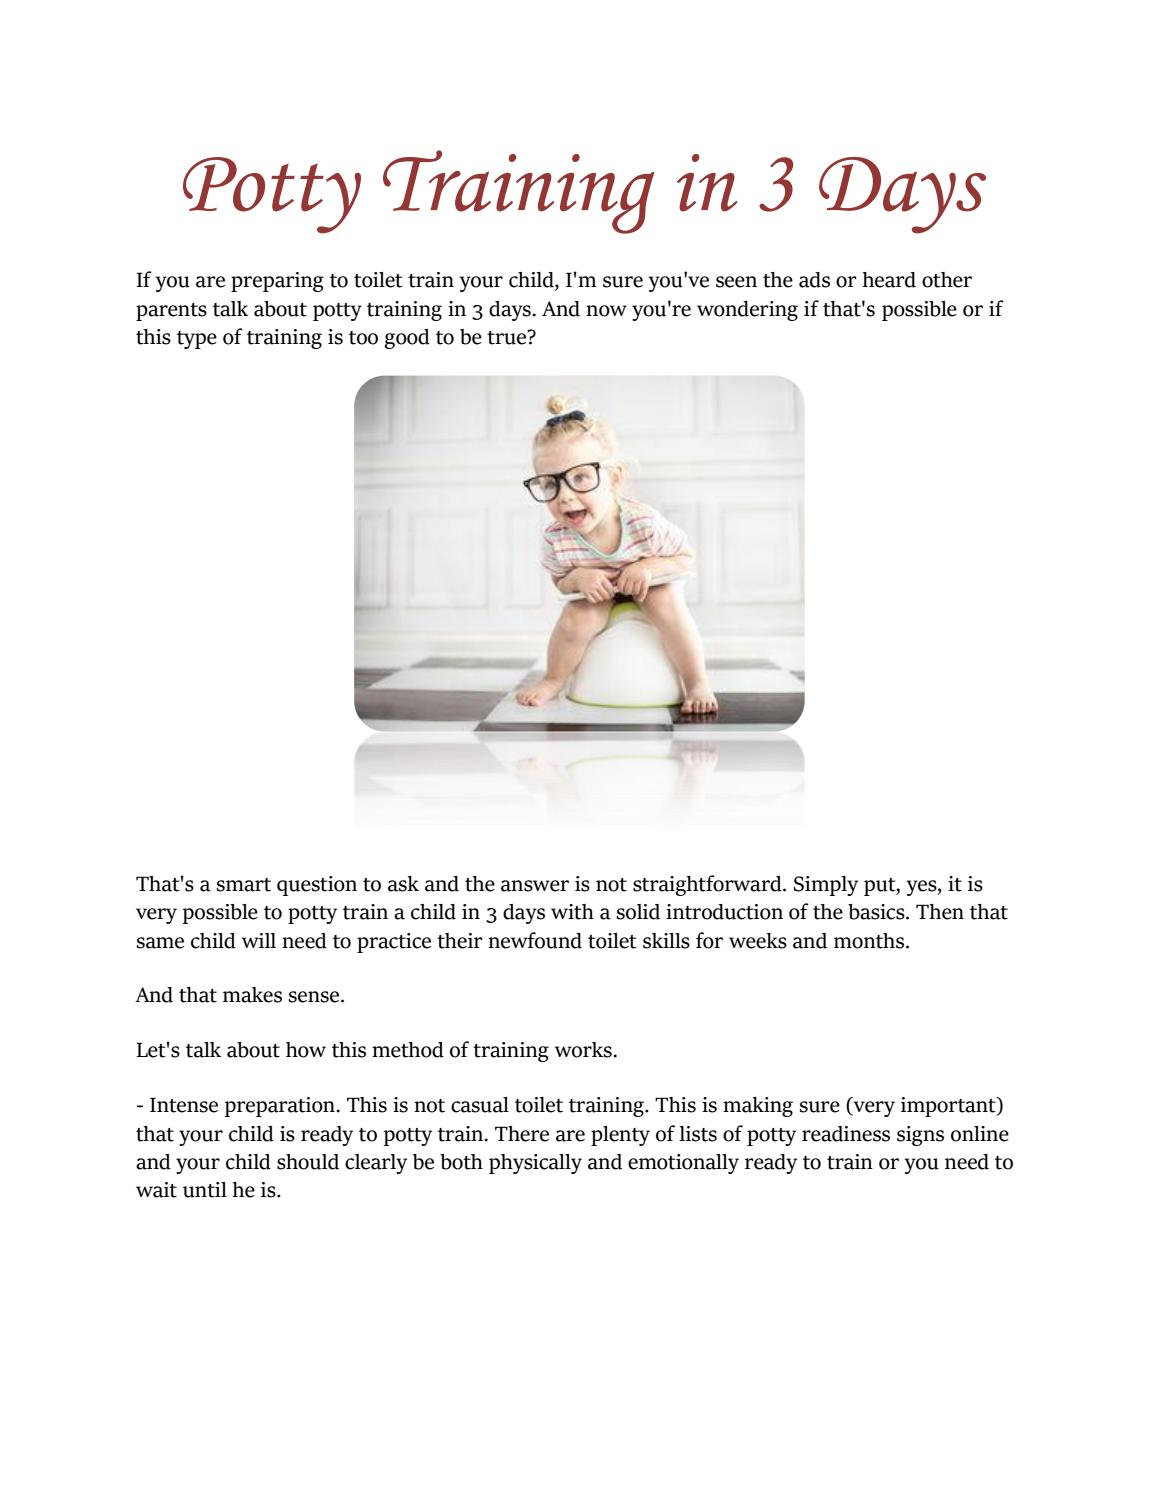 guide to potty training in 3 days